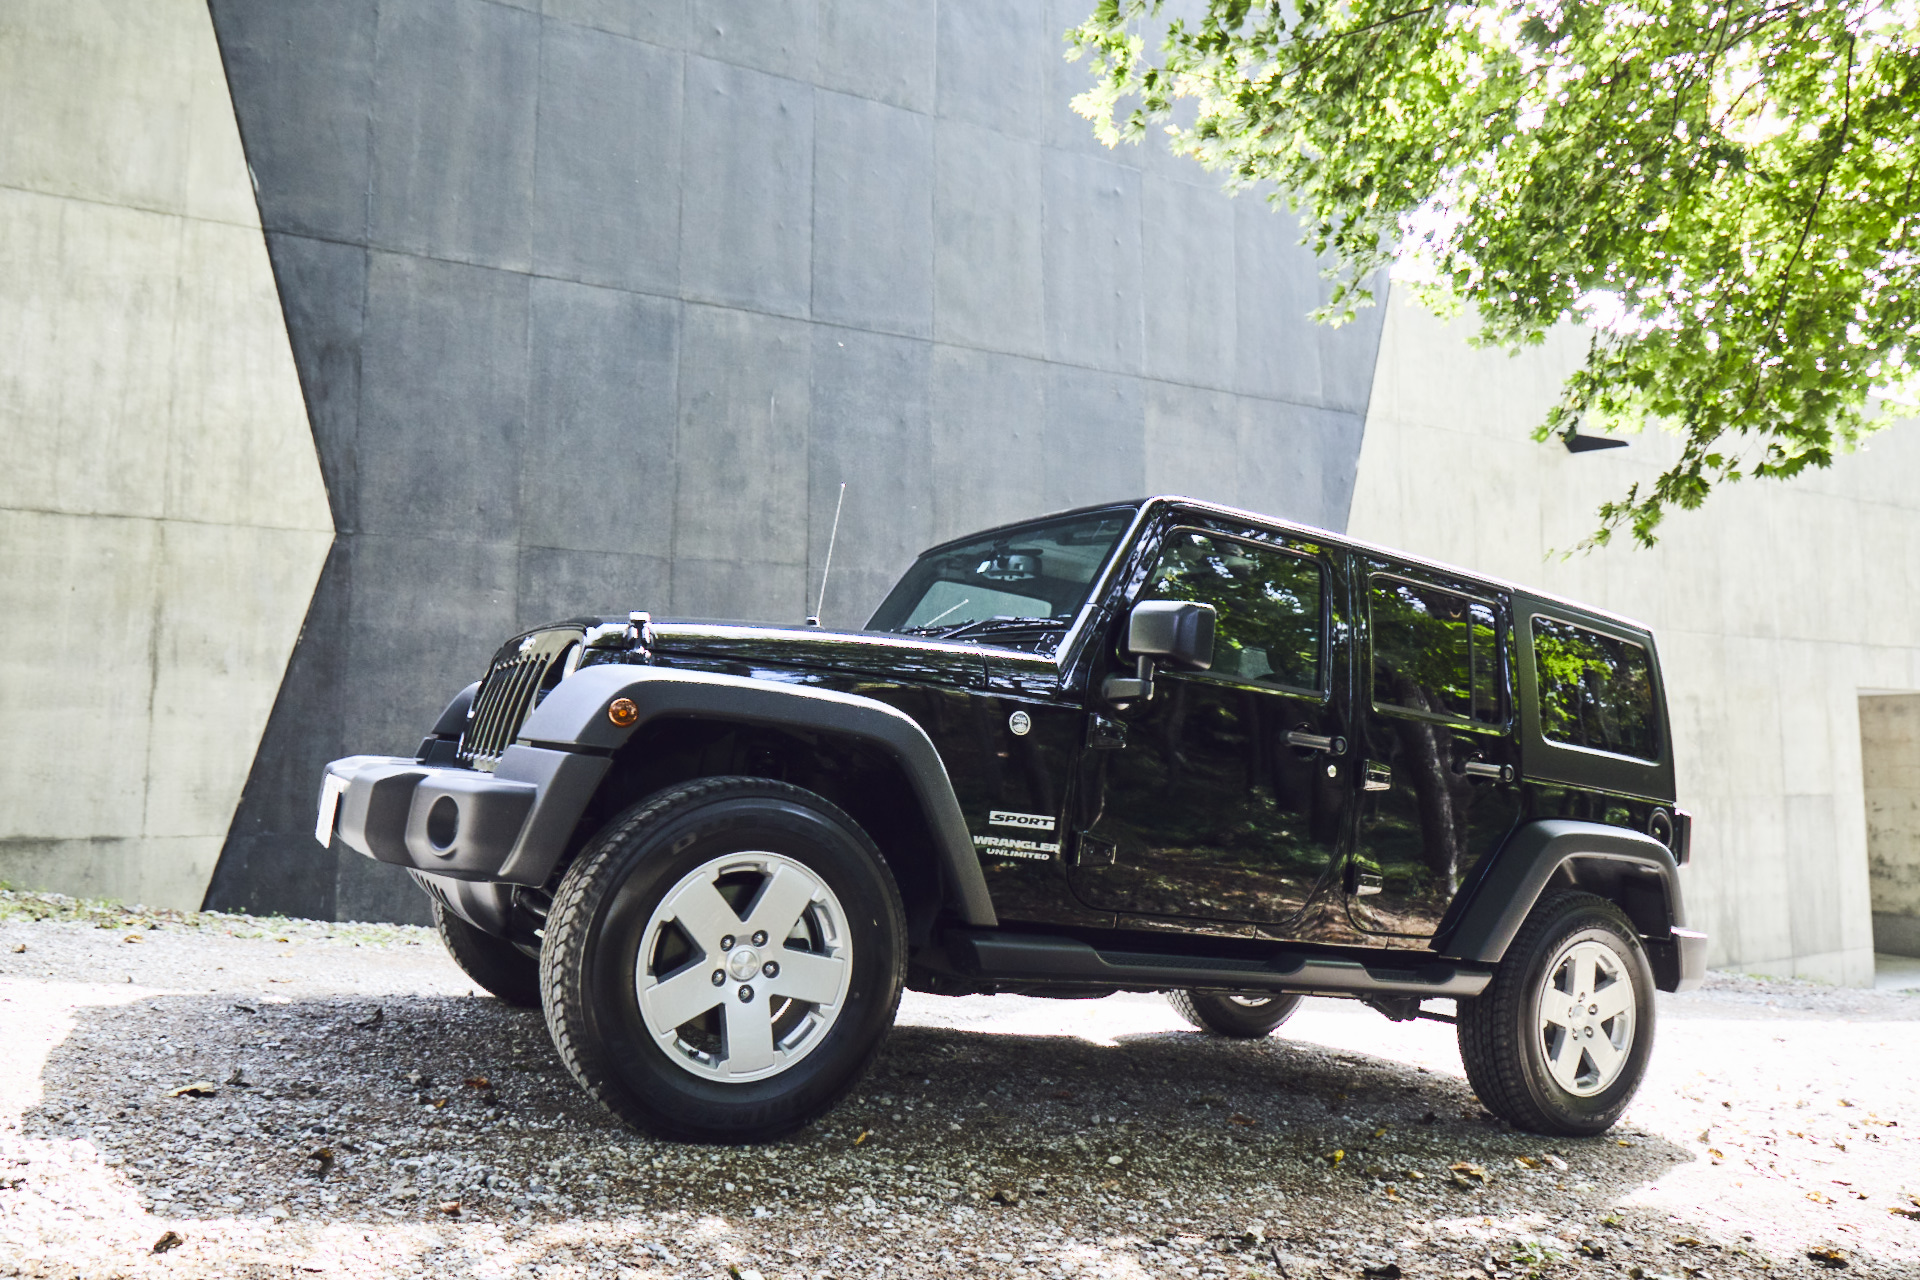 ho_104456 My Jeep®,My Life. ボクとJeep®の暮らしかた。女優・太田莉菜